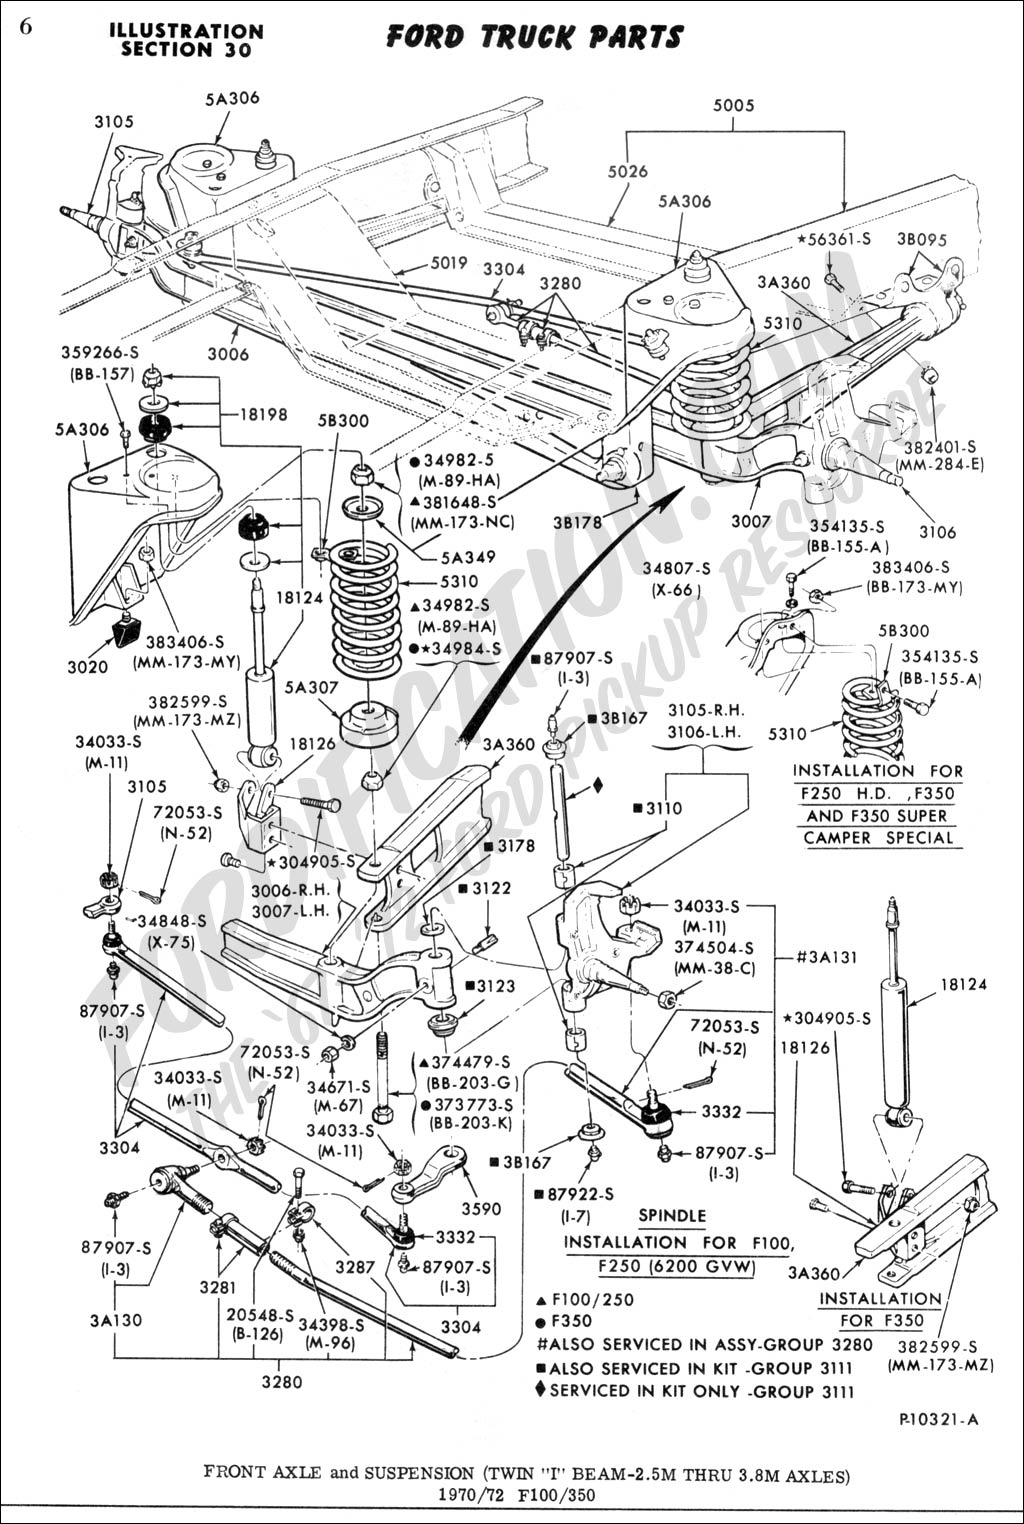 hight resolution of ford focus rear suspension diagram 02 ford f 250 4x4 front end ford f 250 front suspension diagram also ford f 350 super duty wiring